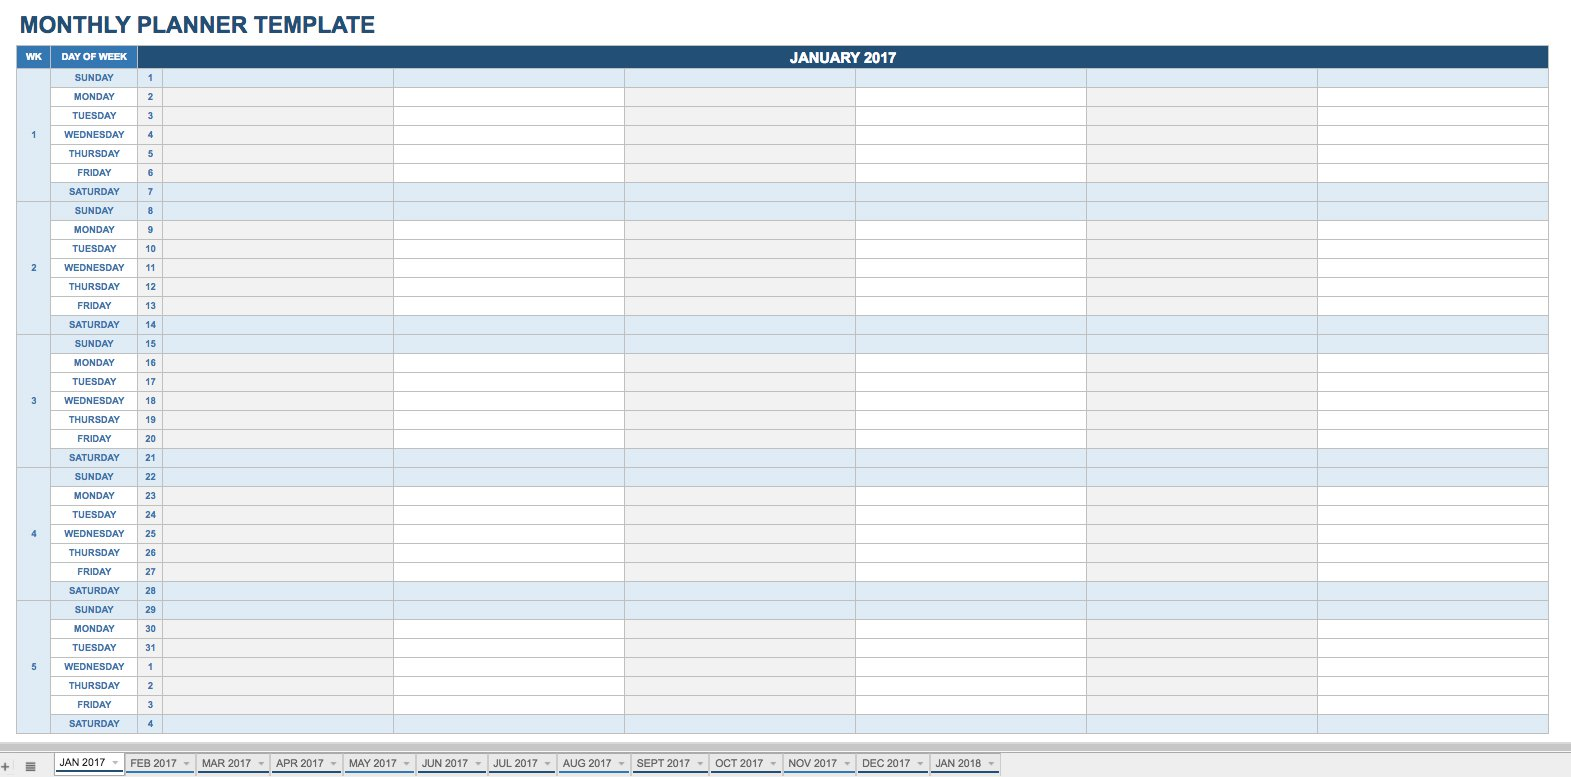 2019 Full Year Calendar Template Smartsheet With 15 Free Monthly Templates